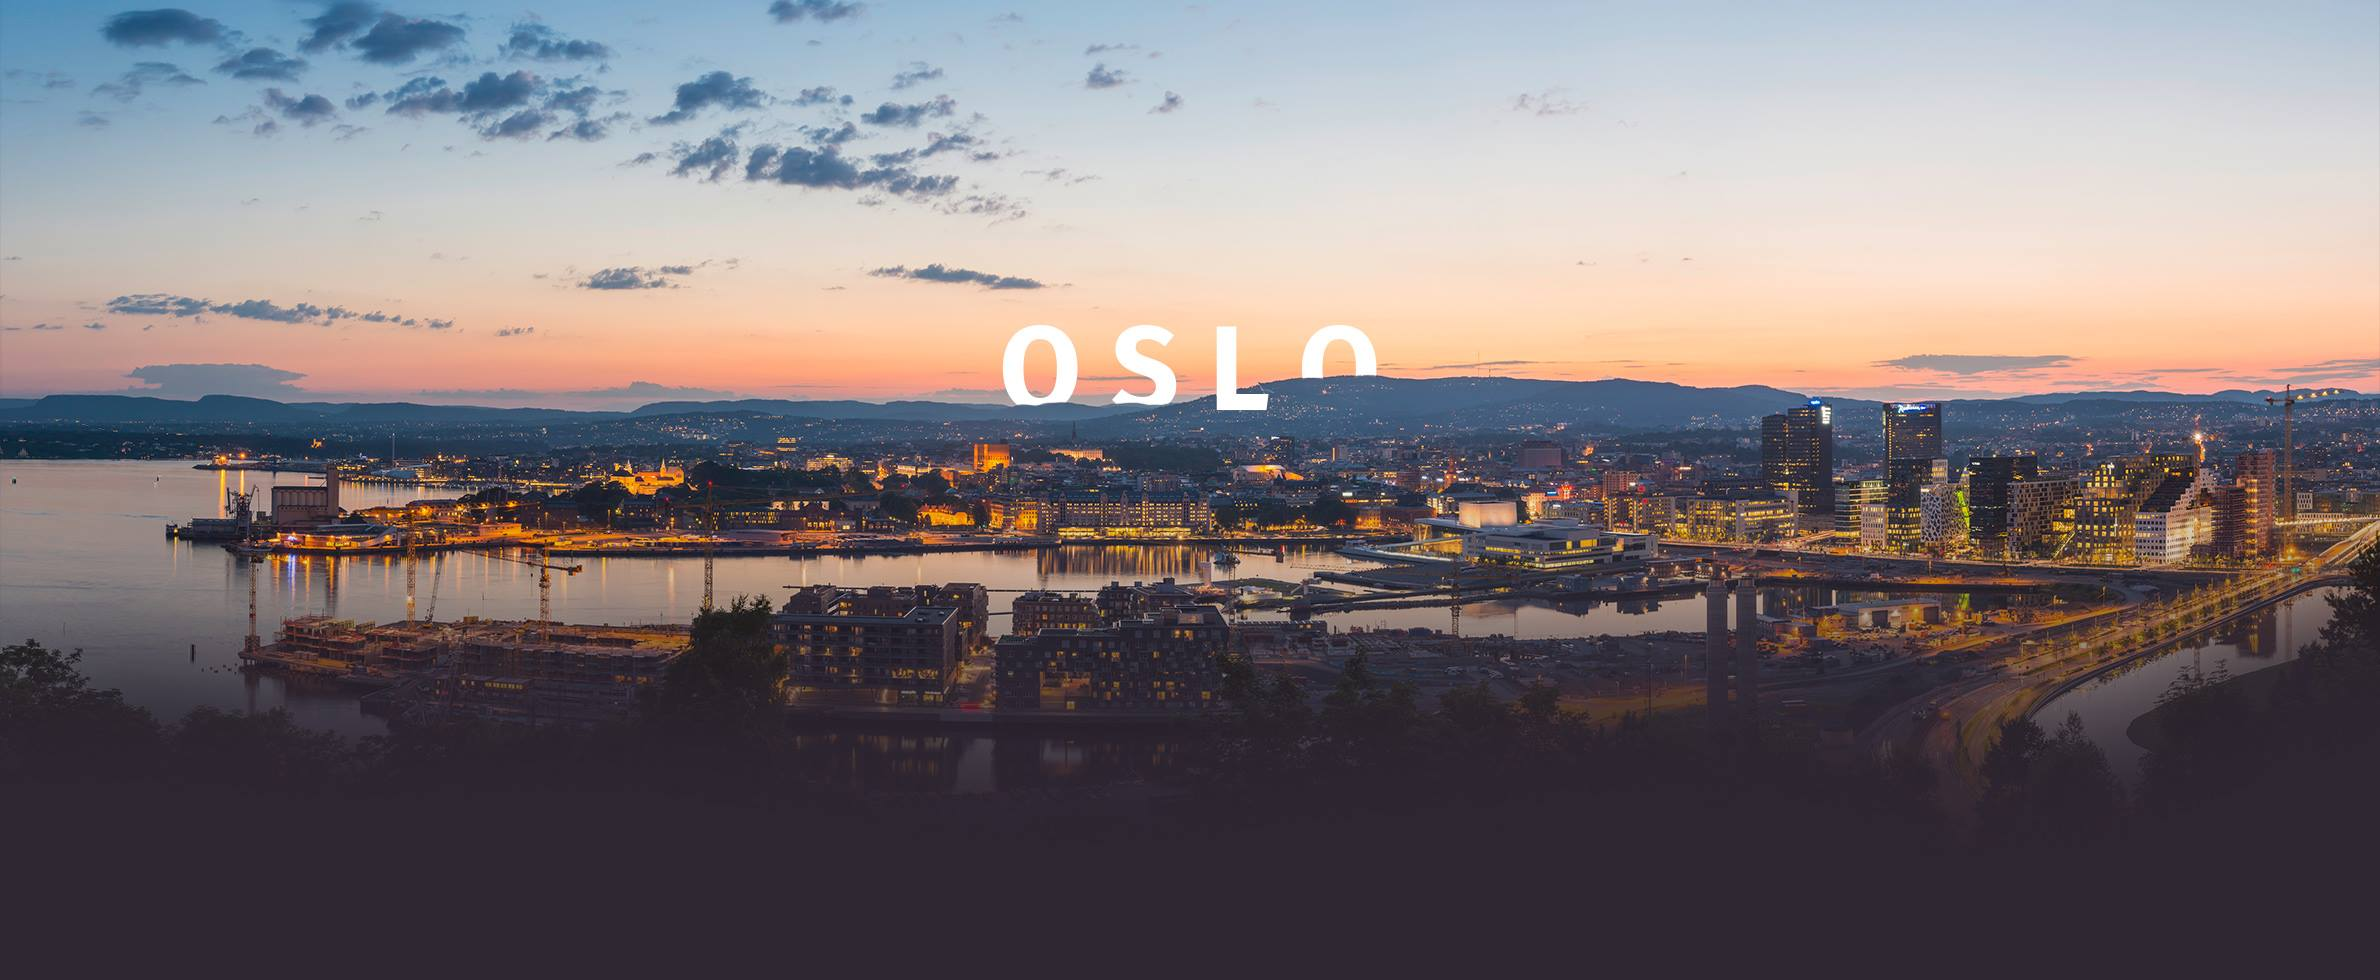 Oslo StartUp Day: Make the City of Oslo your customer!